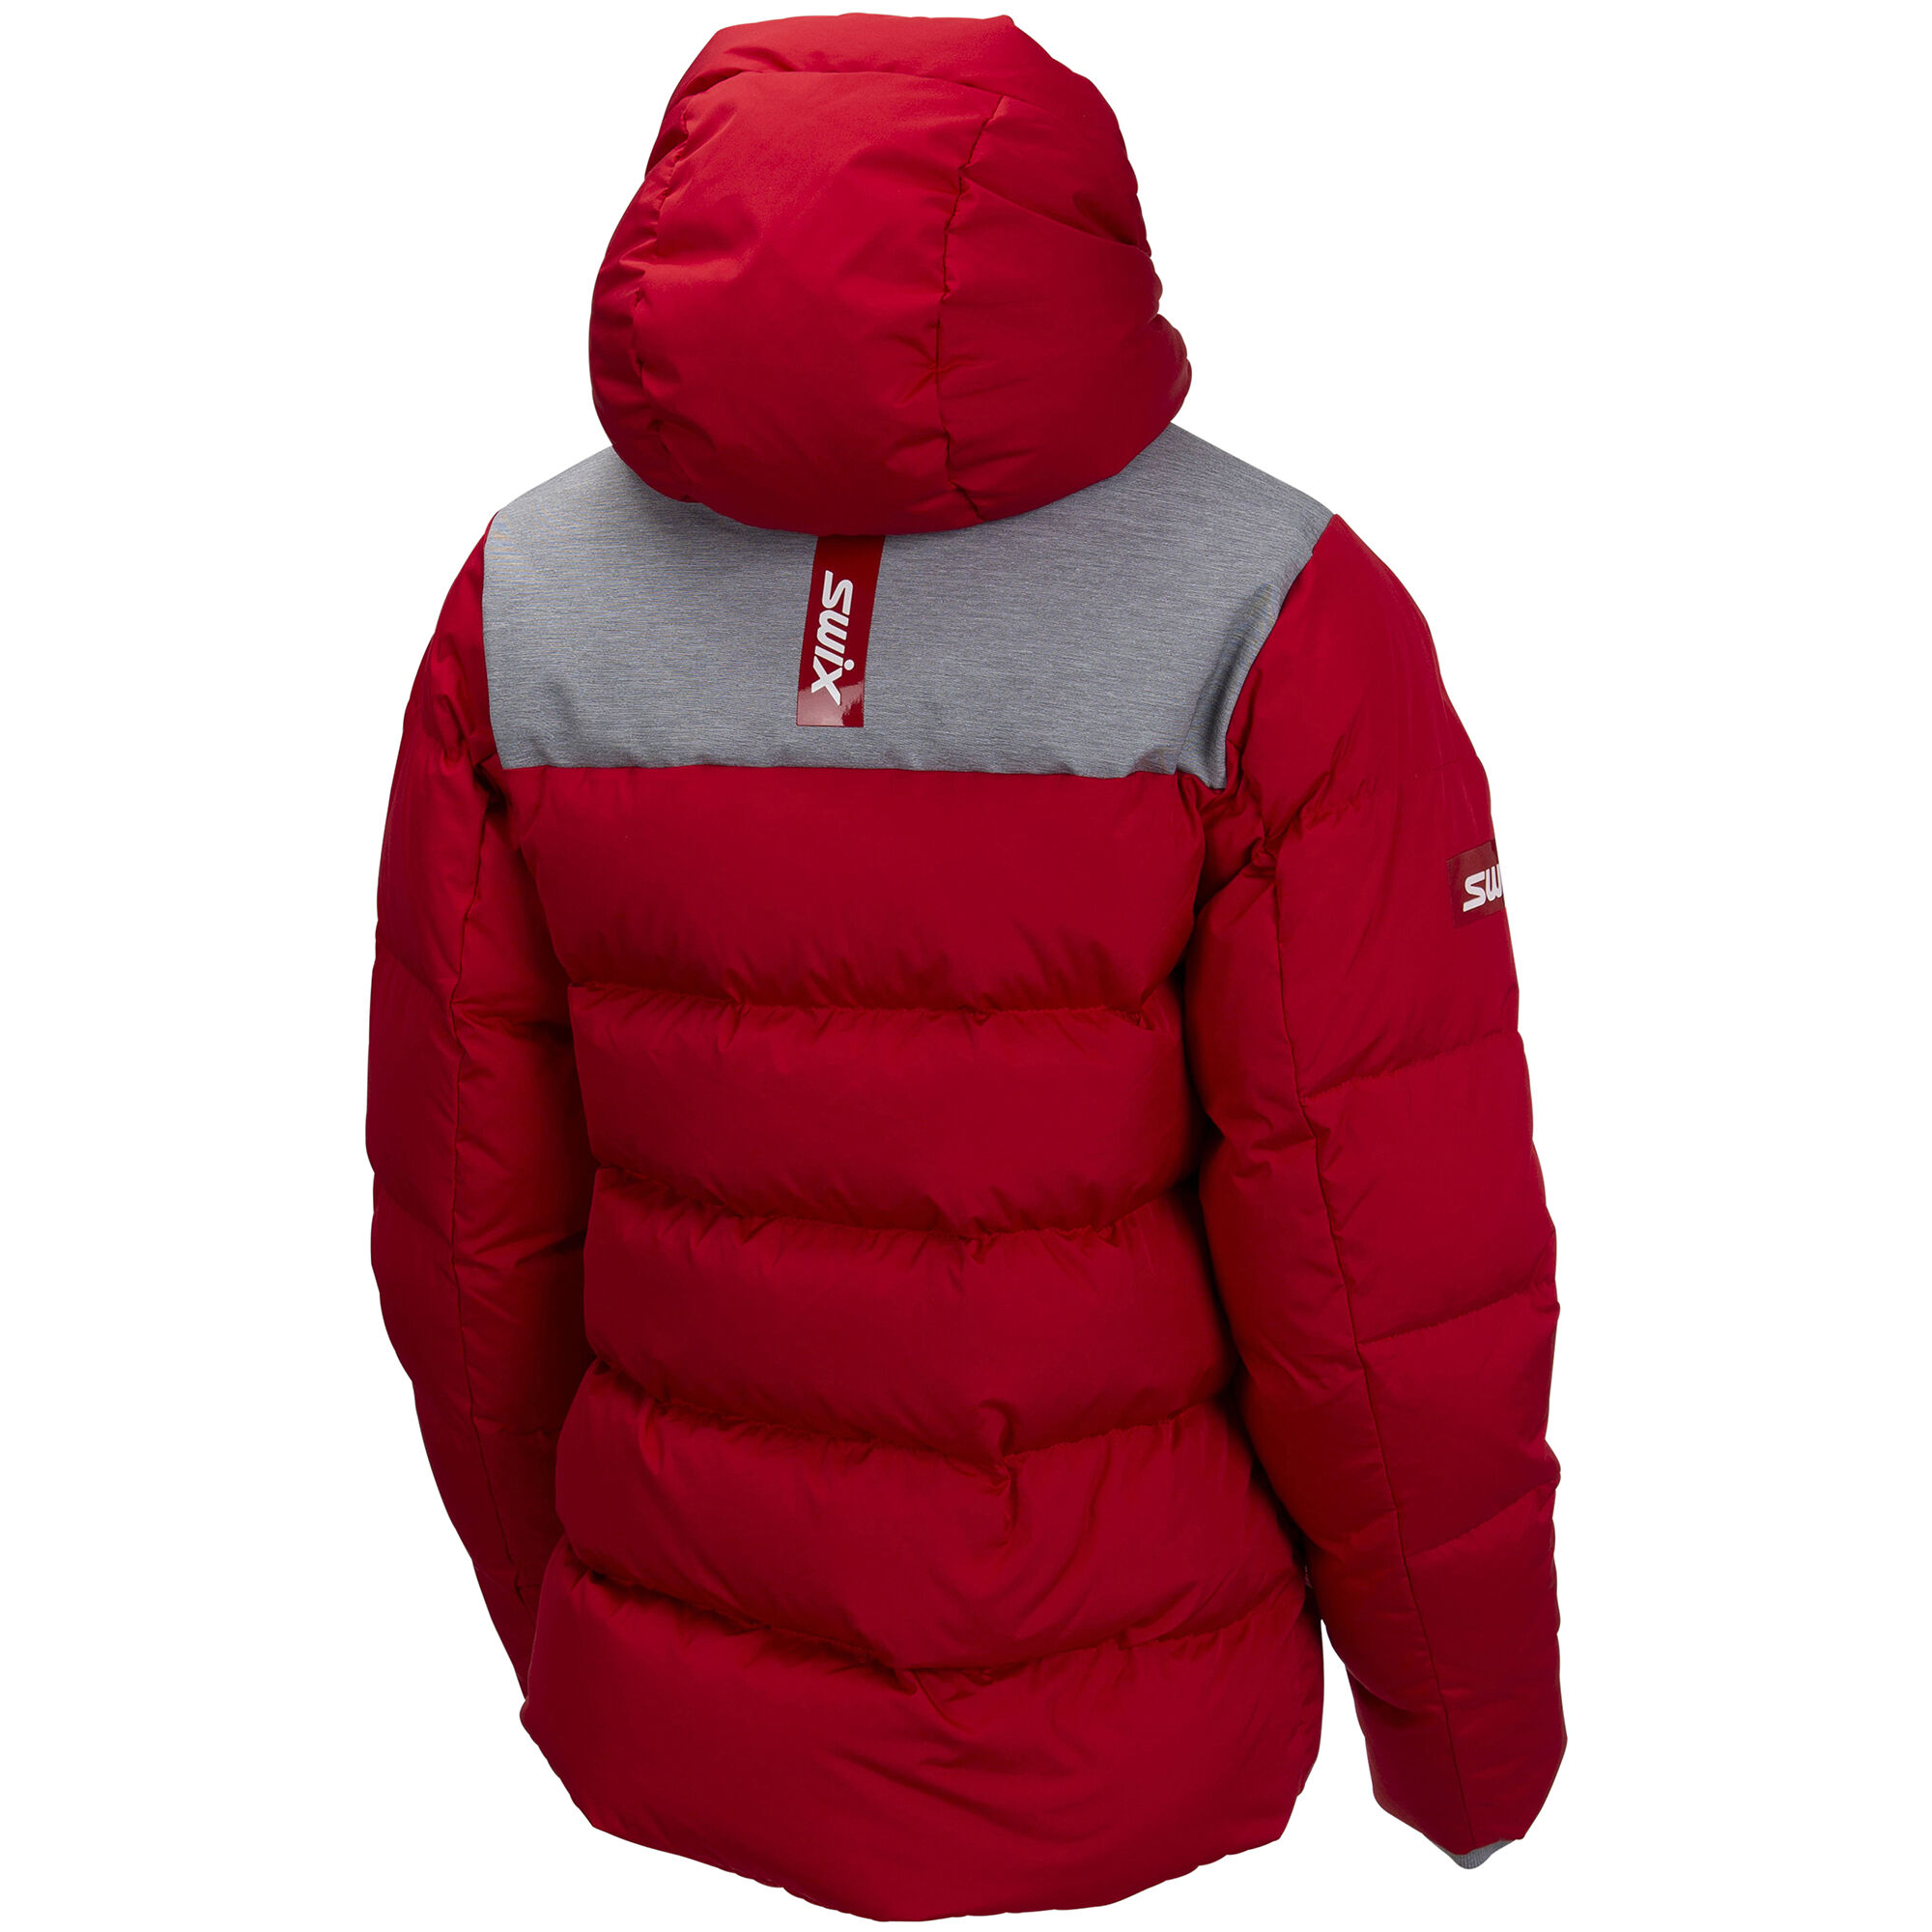 SWIX-20-21-13166-99990-Focus Down jacket W-back (1)